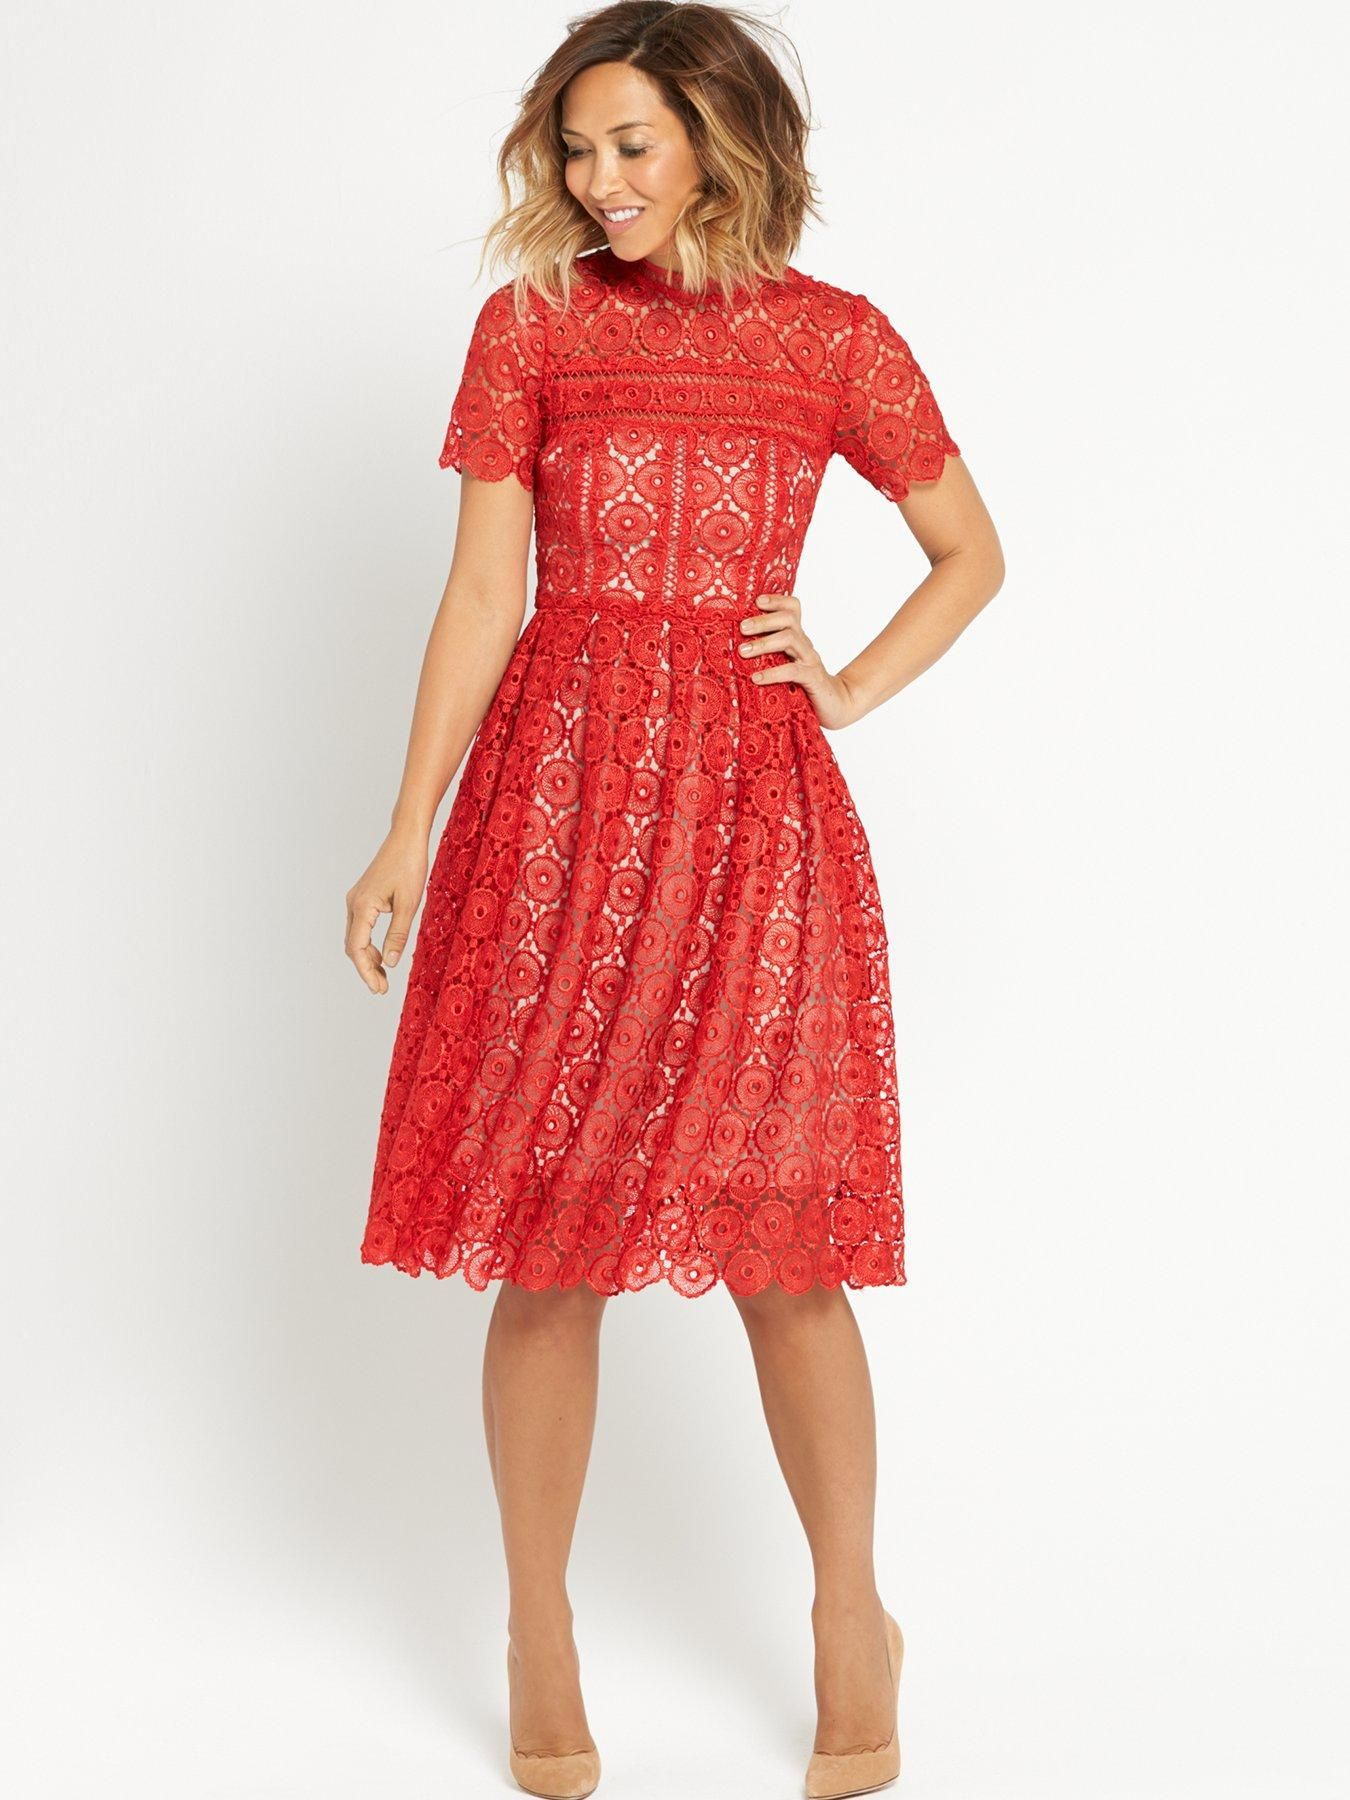 d36b68188ec Myleene Klass Guipure Lace Prom Dress - Red We love this gorgeous prom dress  by Myleene Klass with its fitted top and flaring prom style skirt creating  a ...